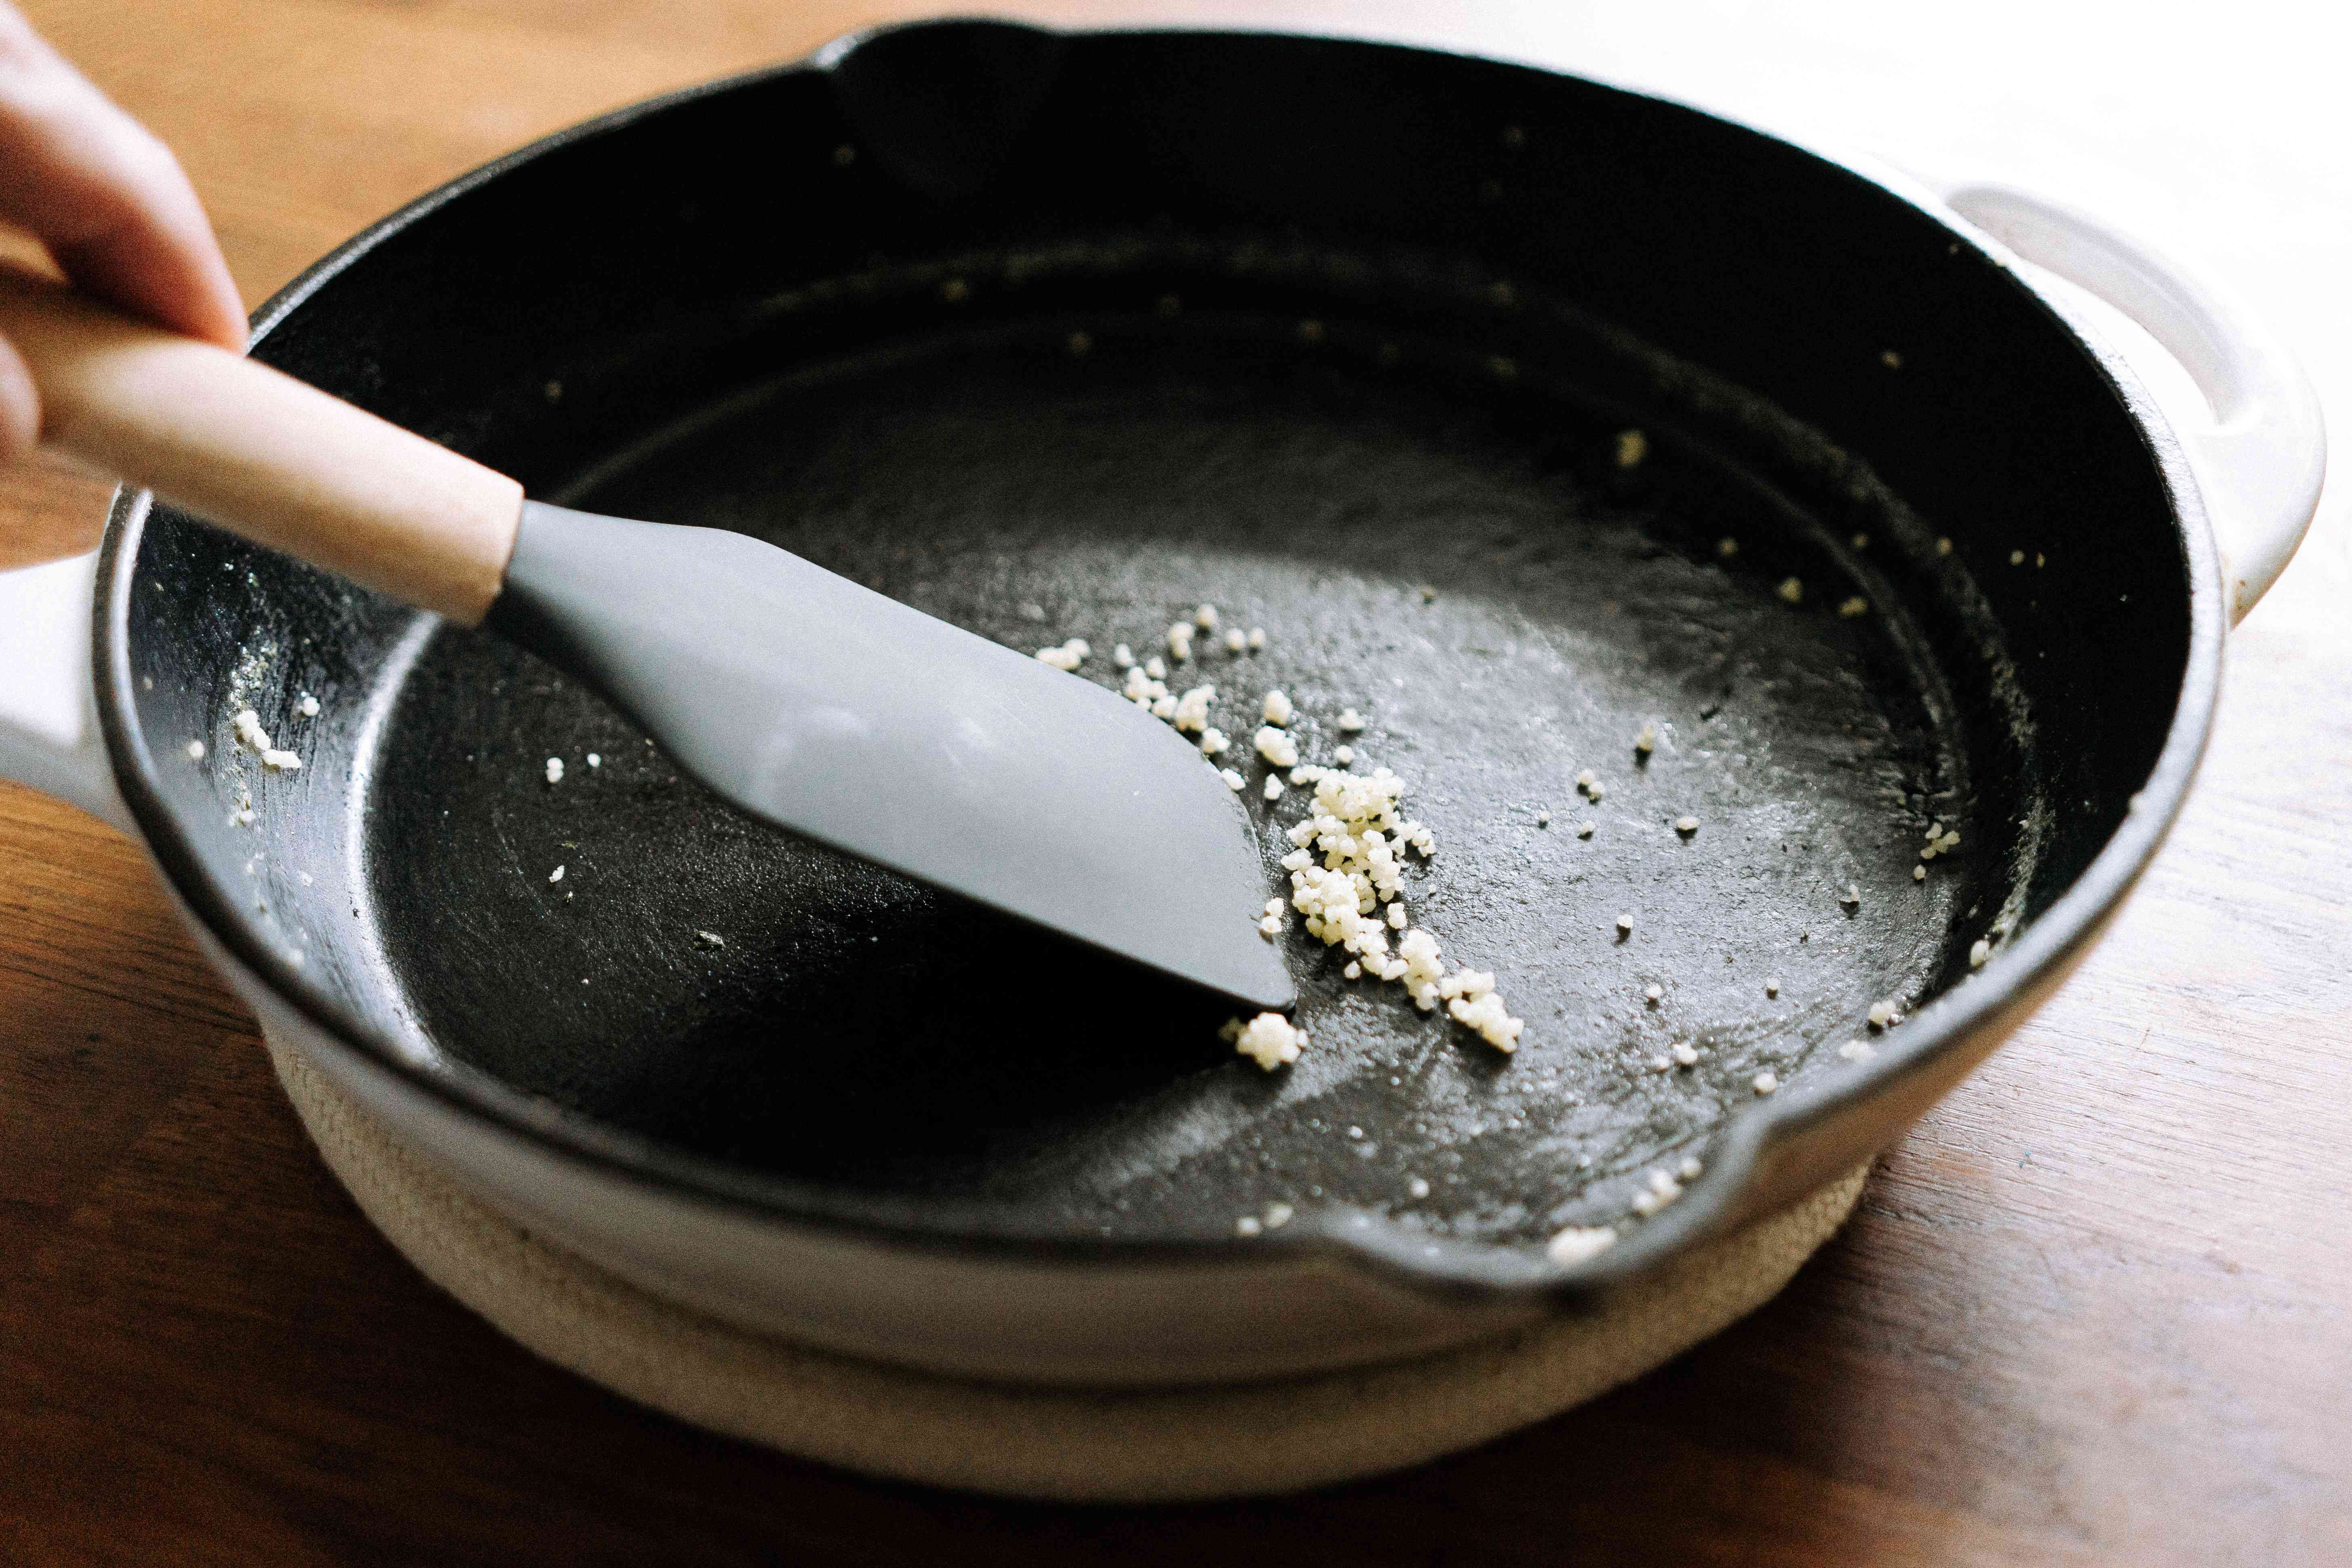 using a spatula to scrape off extra food from cast iron